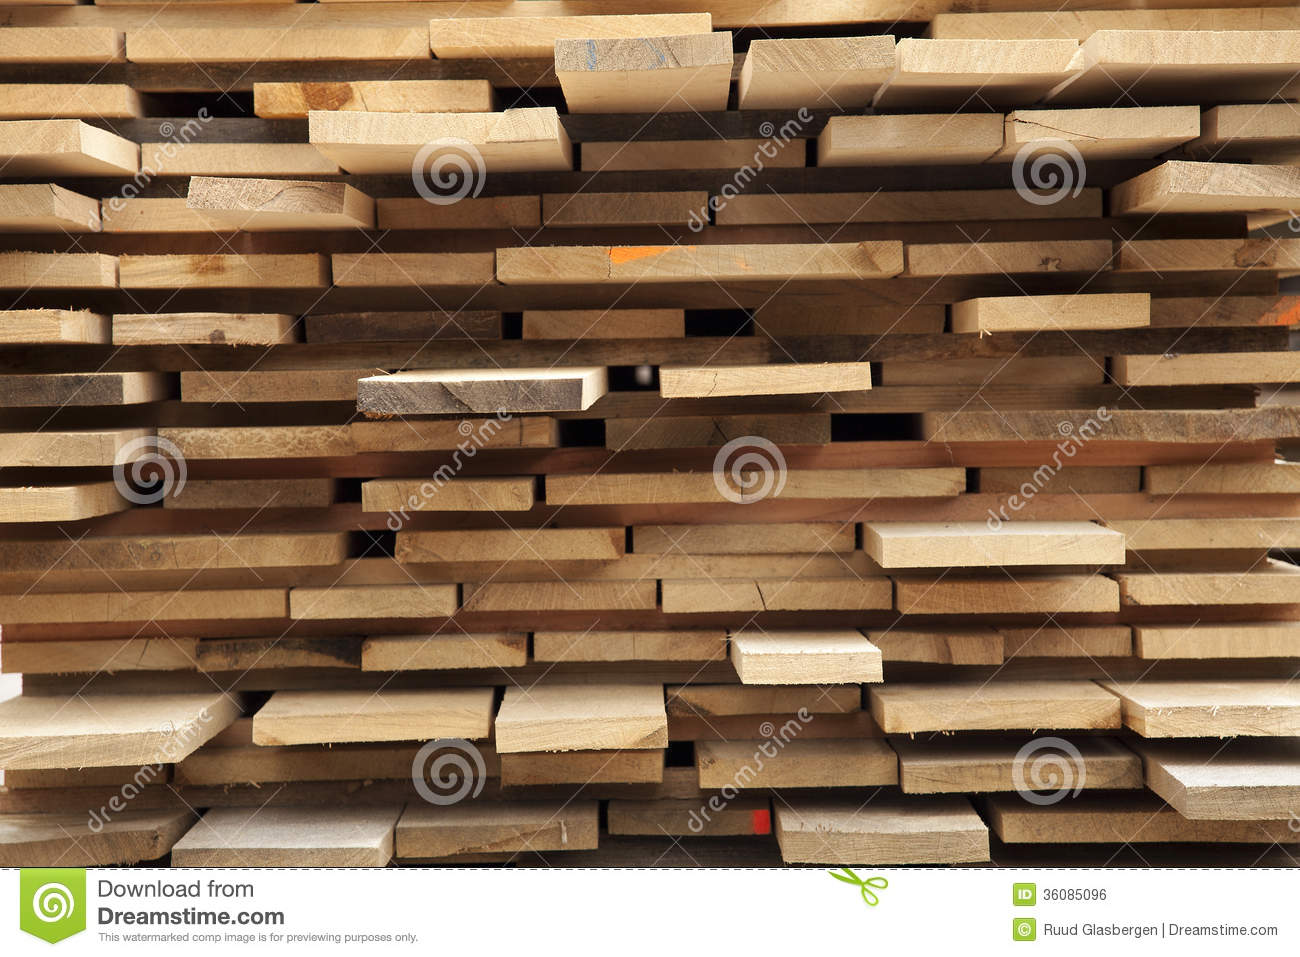 Rough Wood Planks ~ Stack with rough sawn wood planks royalty free stock image